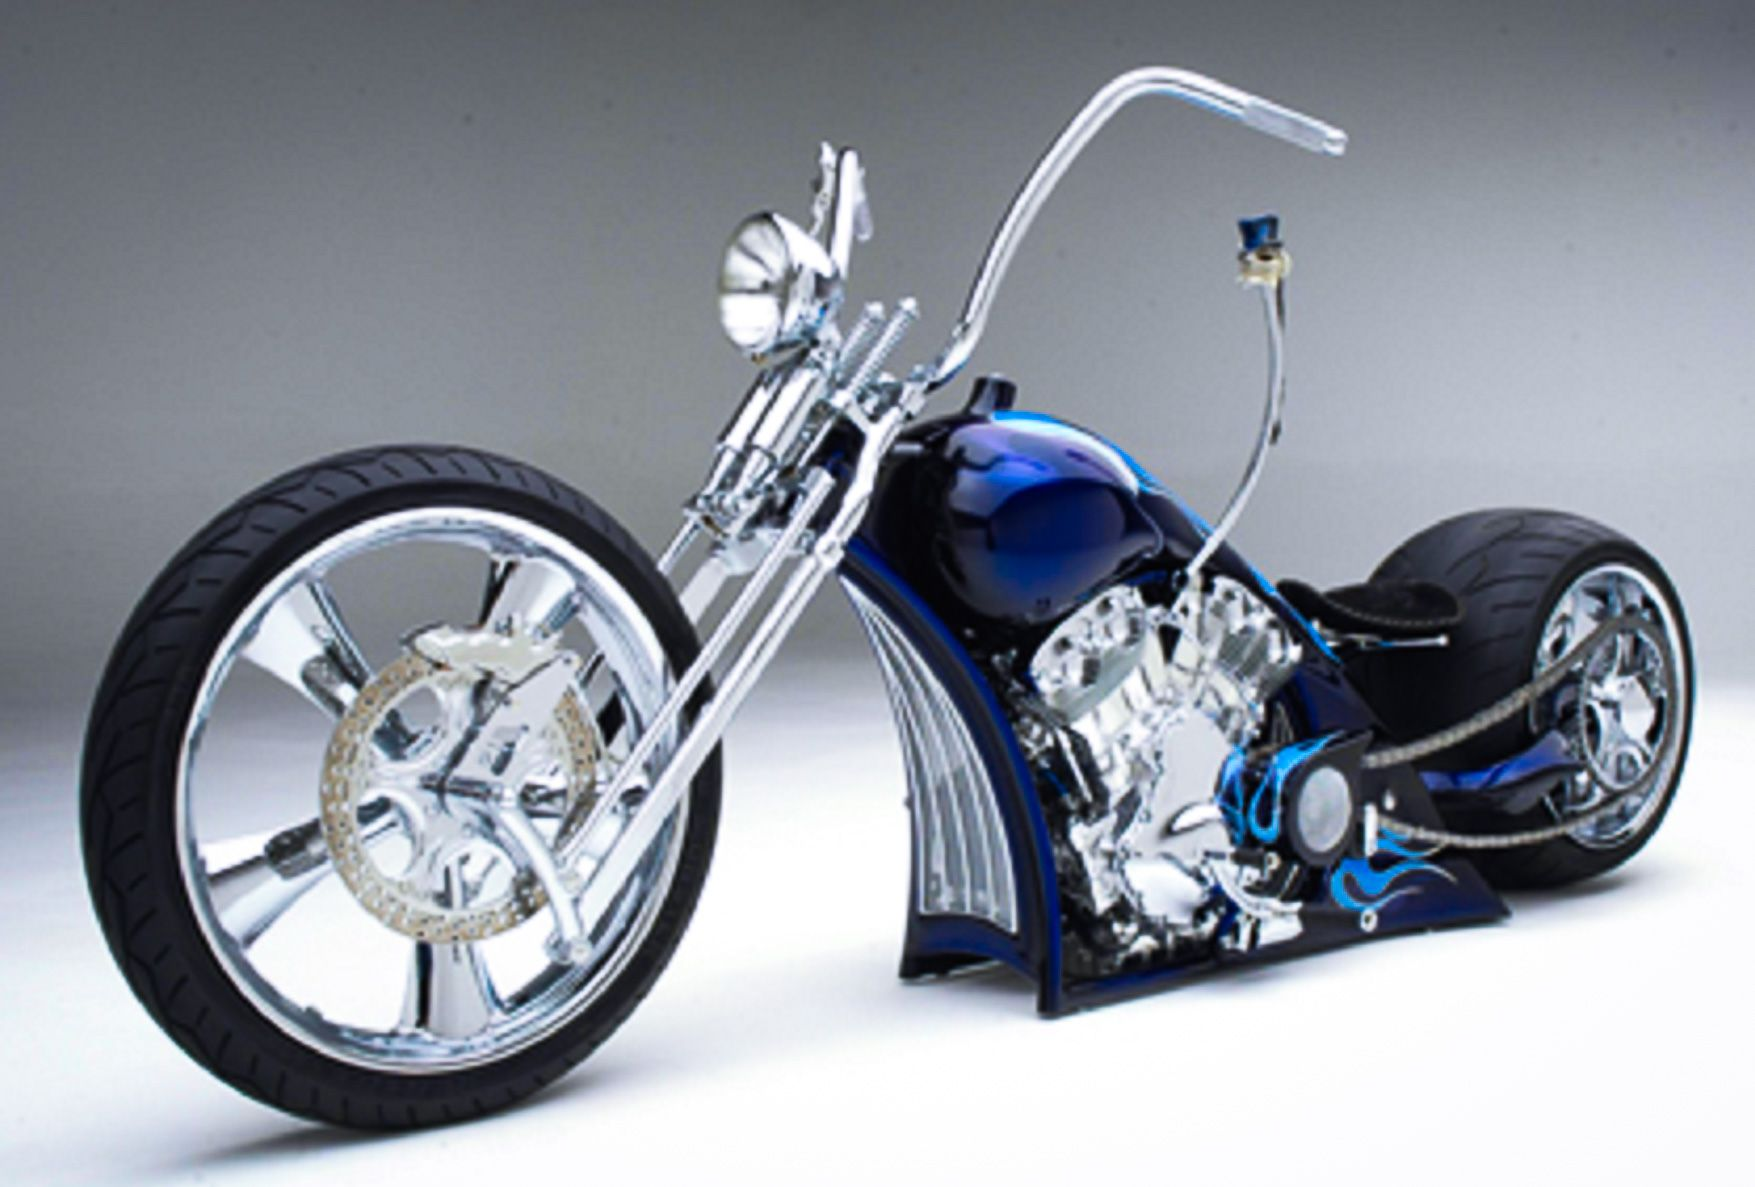 Pin By Tony On Sick Sleds Pinterest Bike Motorcycle And Custom